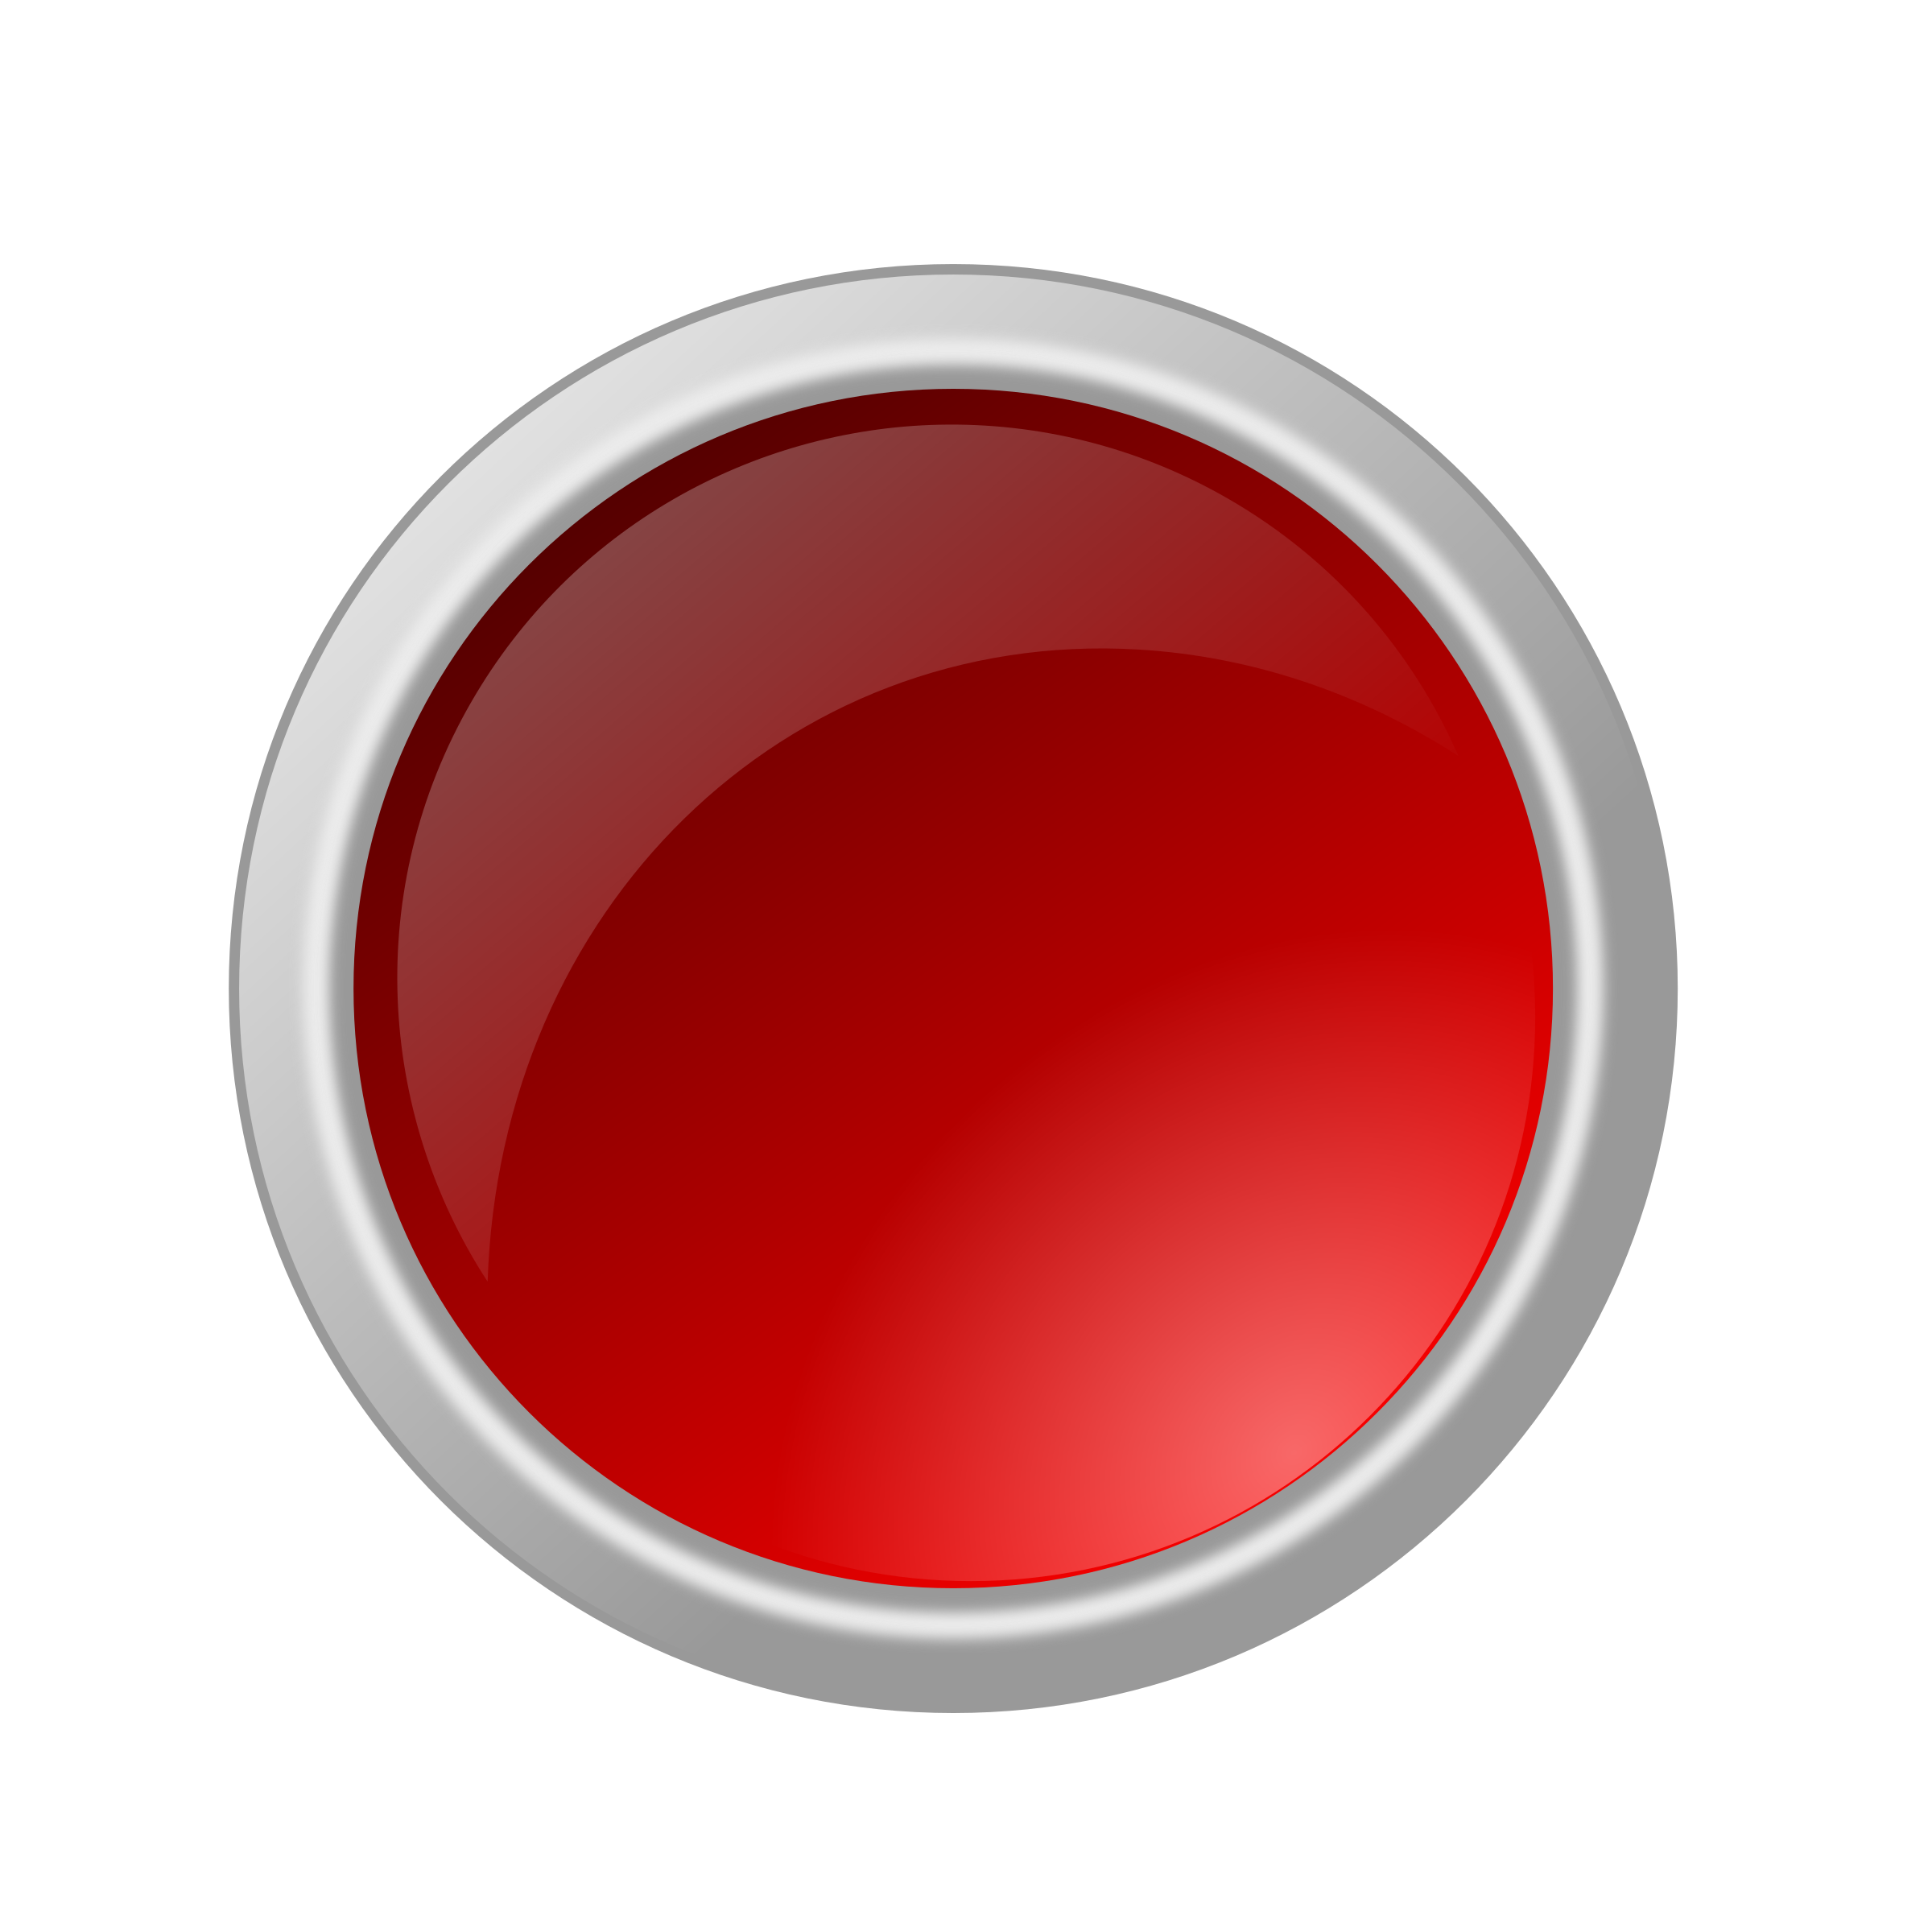 glossy red button by ricardomaia